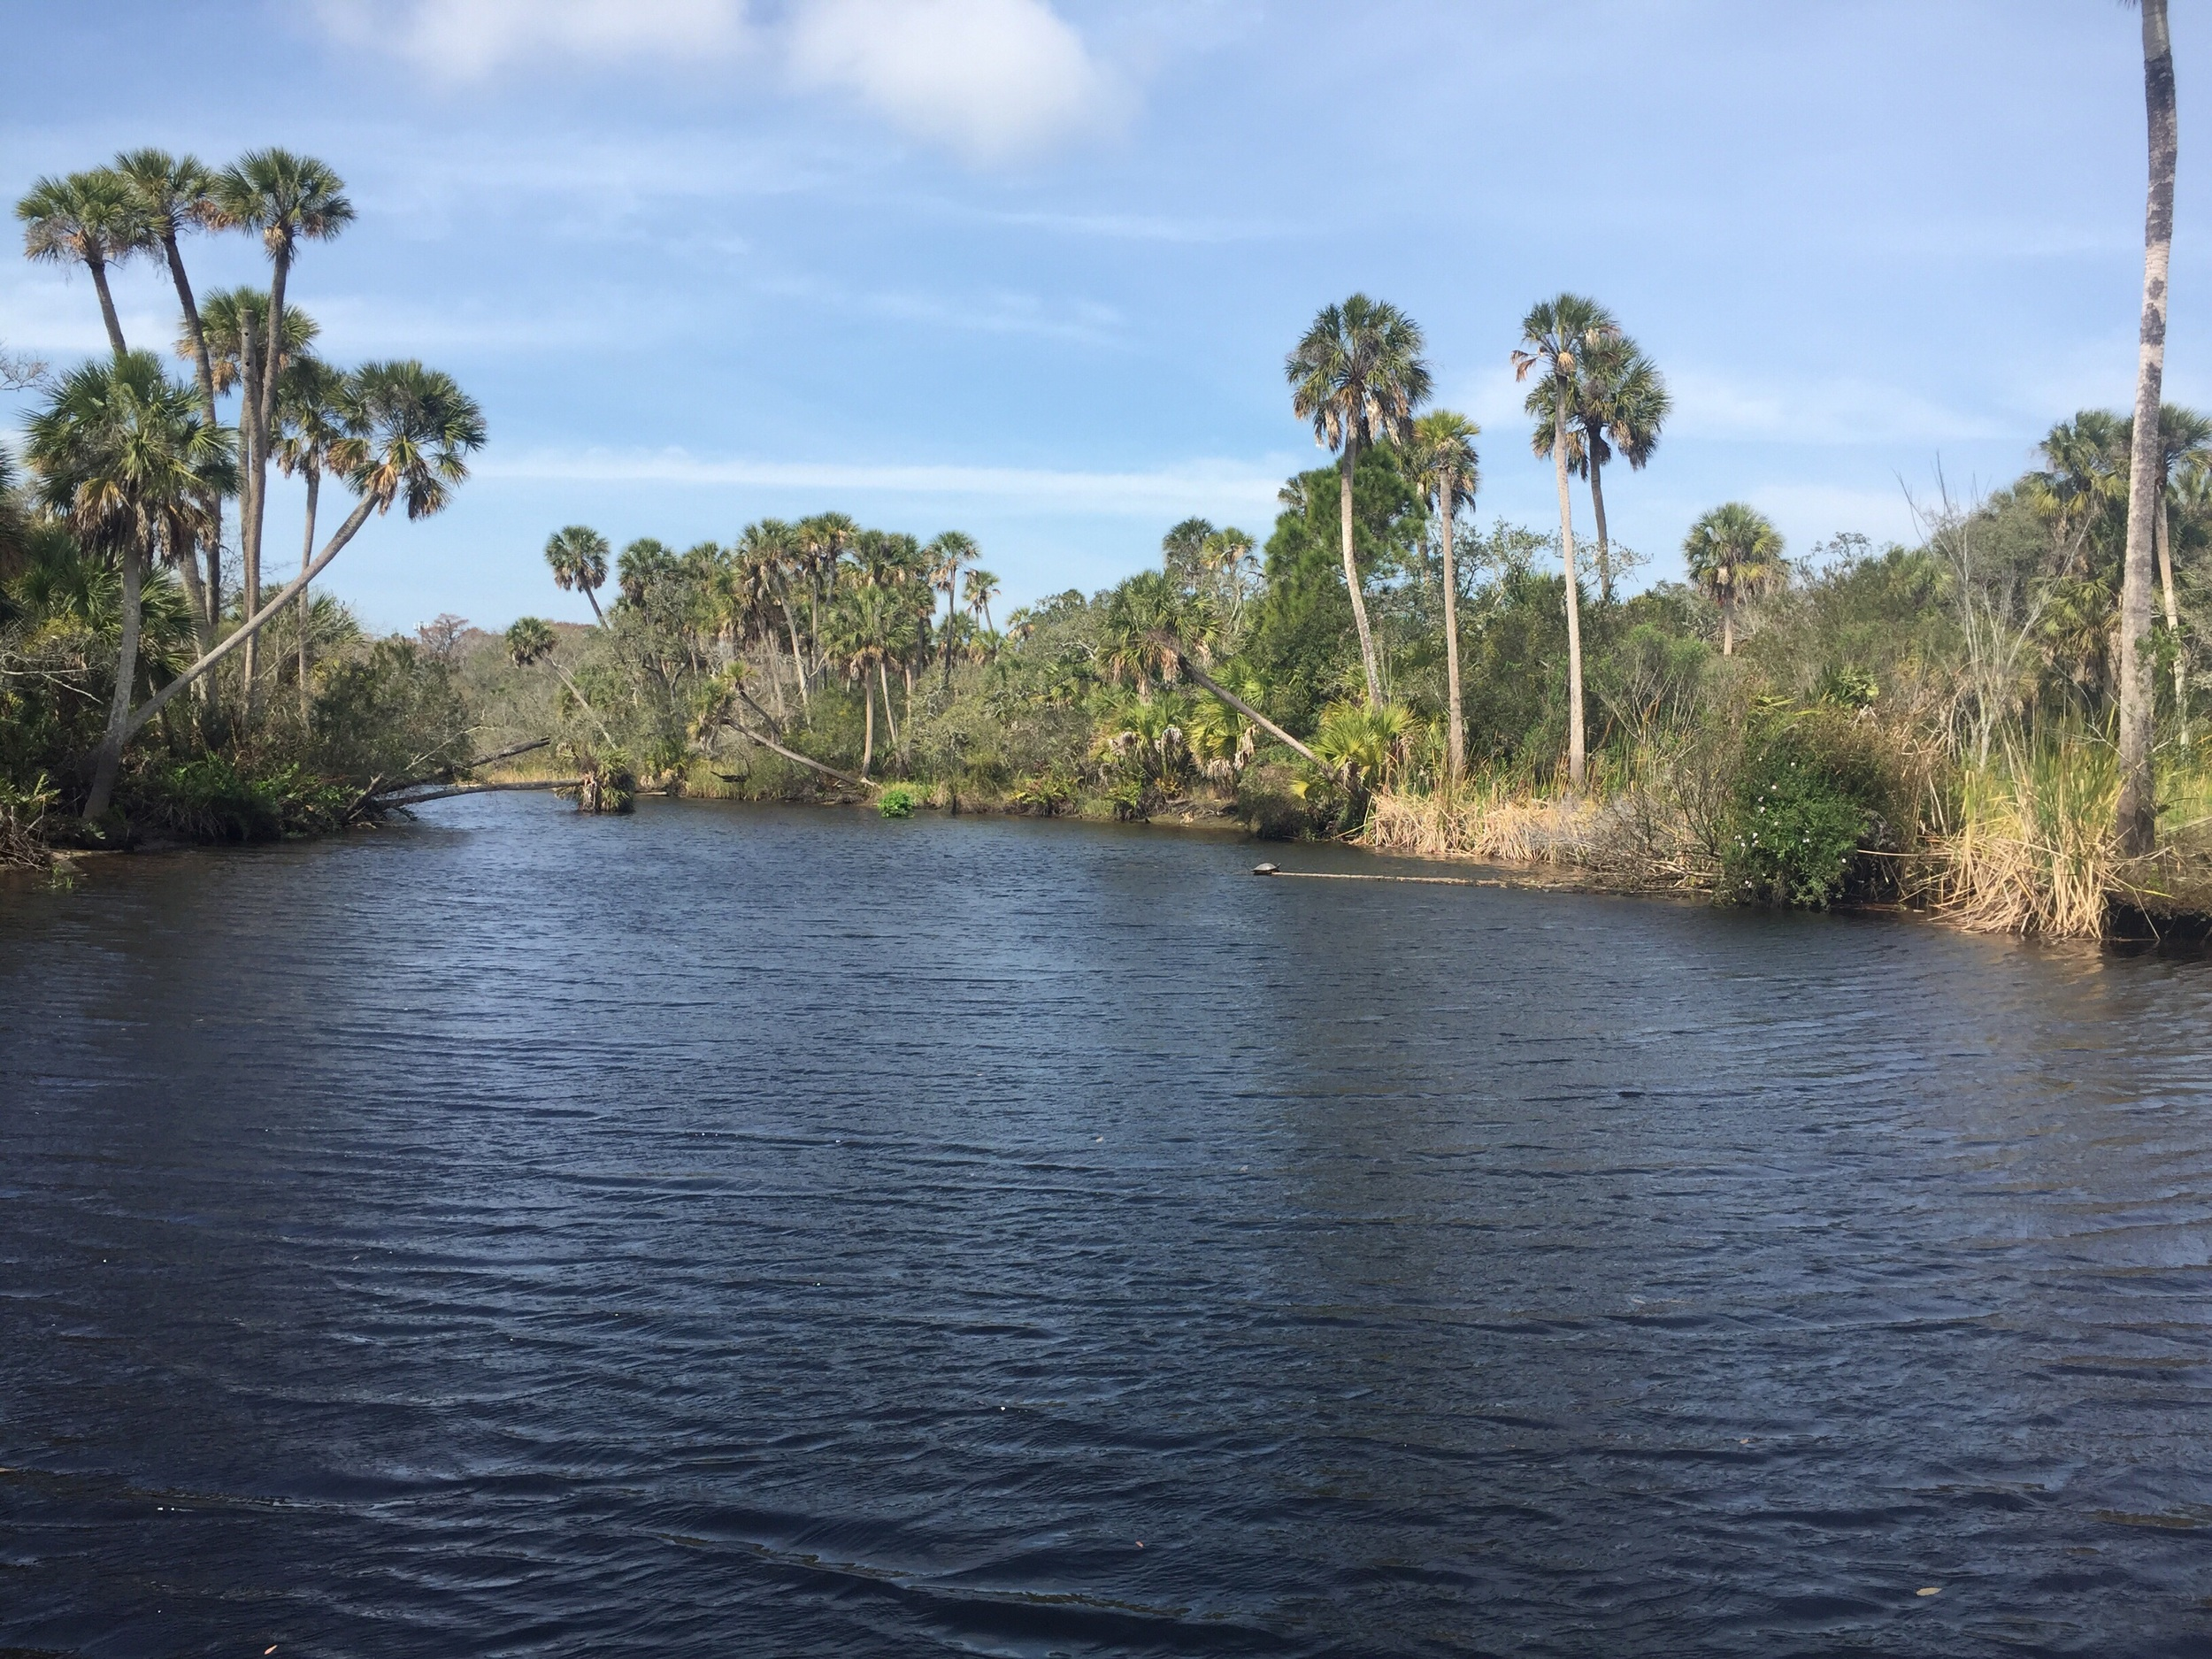 Anclote River in Pasco County.